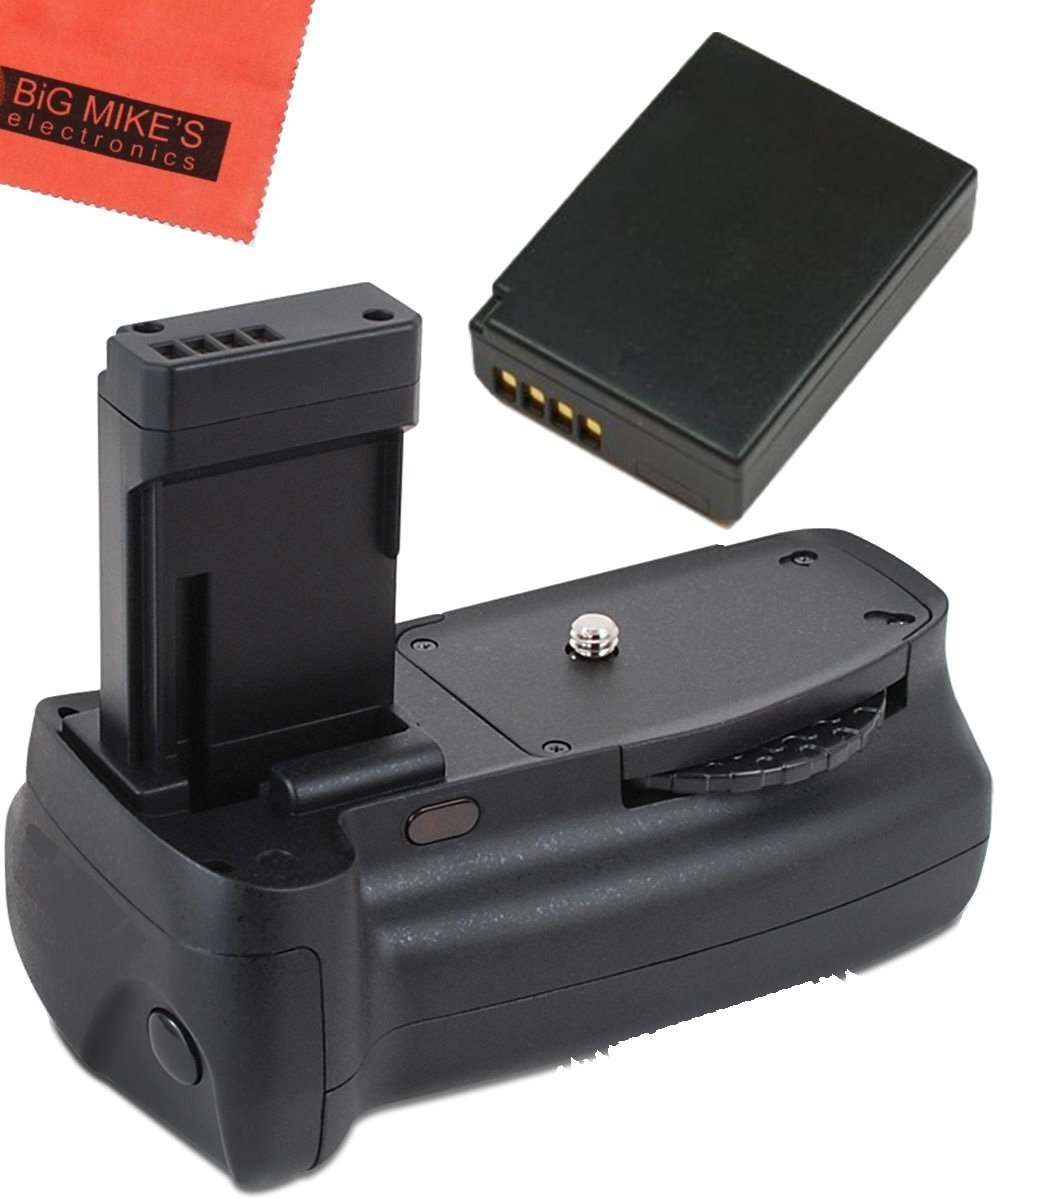 Battery Grip Kit for Canon EOS Rebel T3, T5, T6, Kiss X50, Kiss X70, EOS 1100D, EOS 1200D, EOS 1300D Digital SLR Camera Includes Qty 1 Replacement LP-E10 Battery + Vertical Battery Grip + More!!